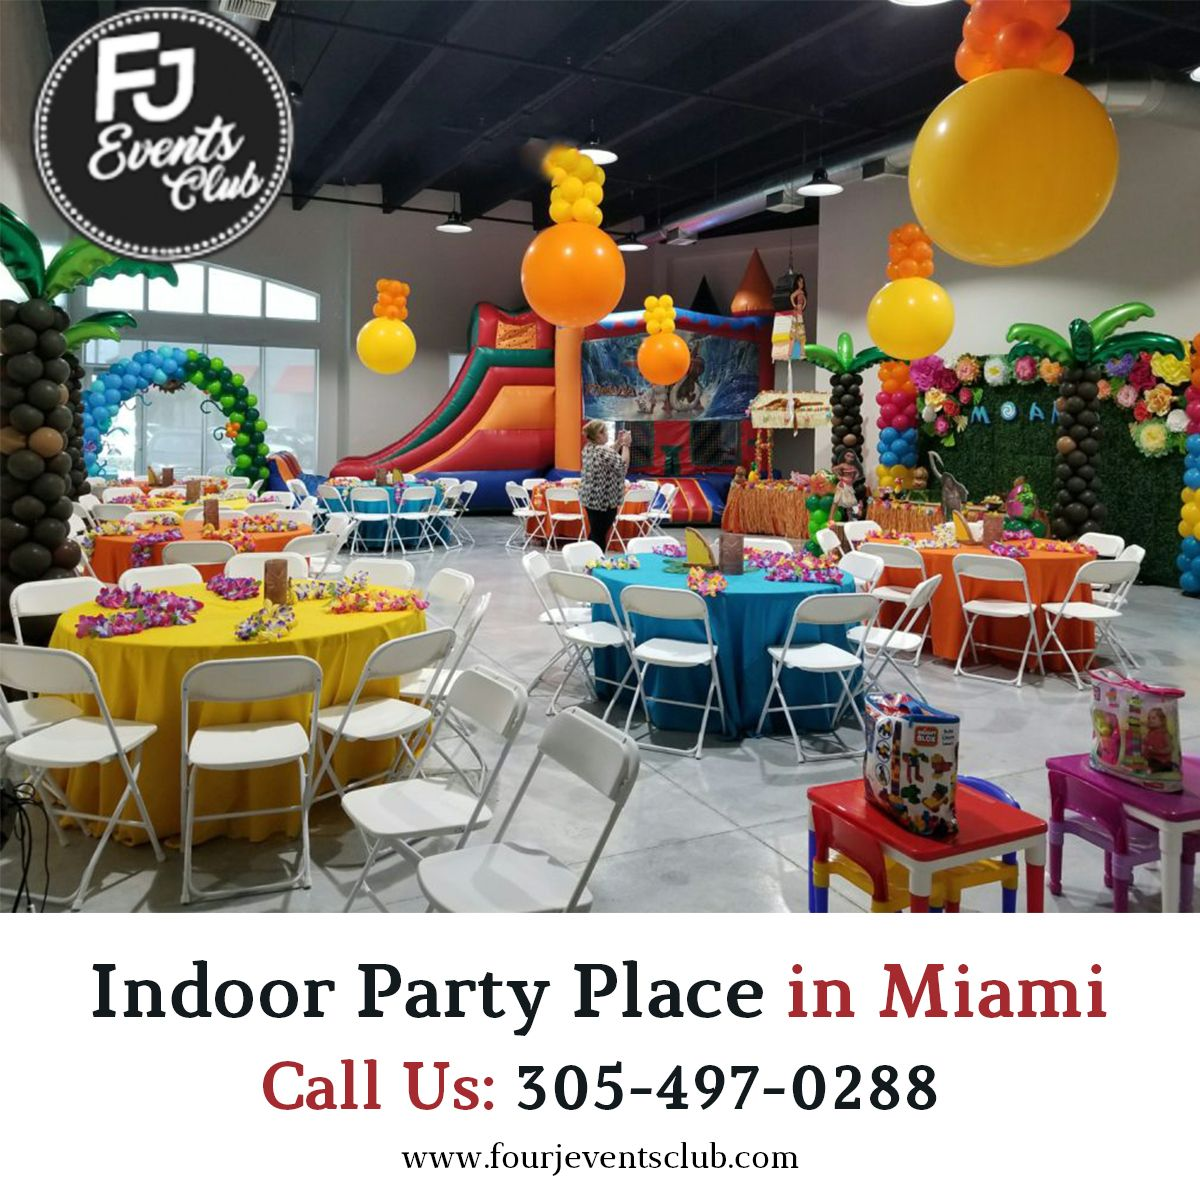 Indoor Party Place in Miami in 2020 Kids birthday party